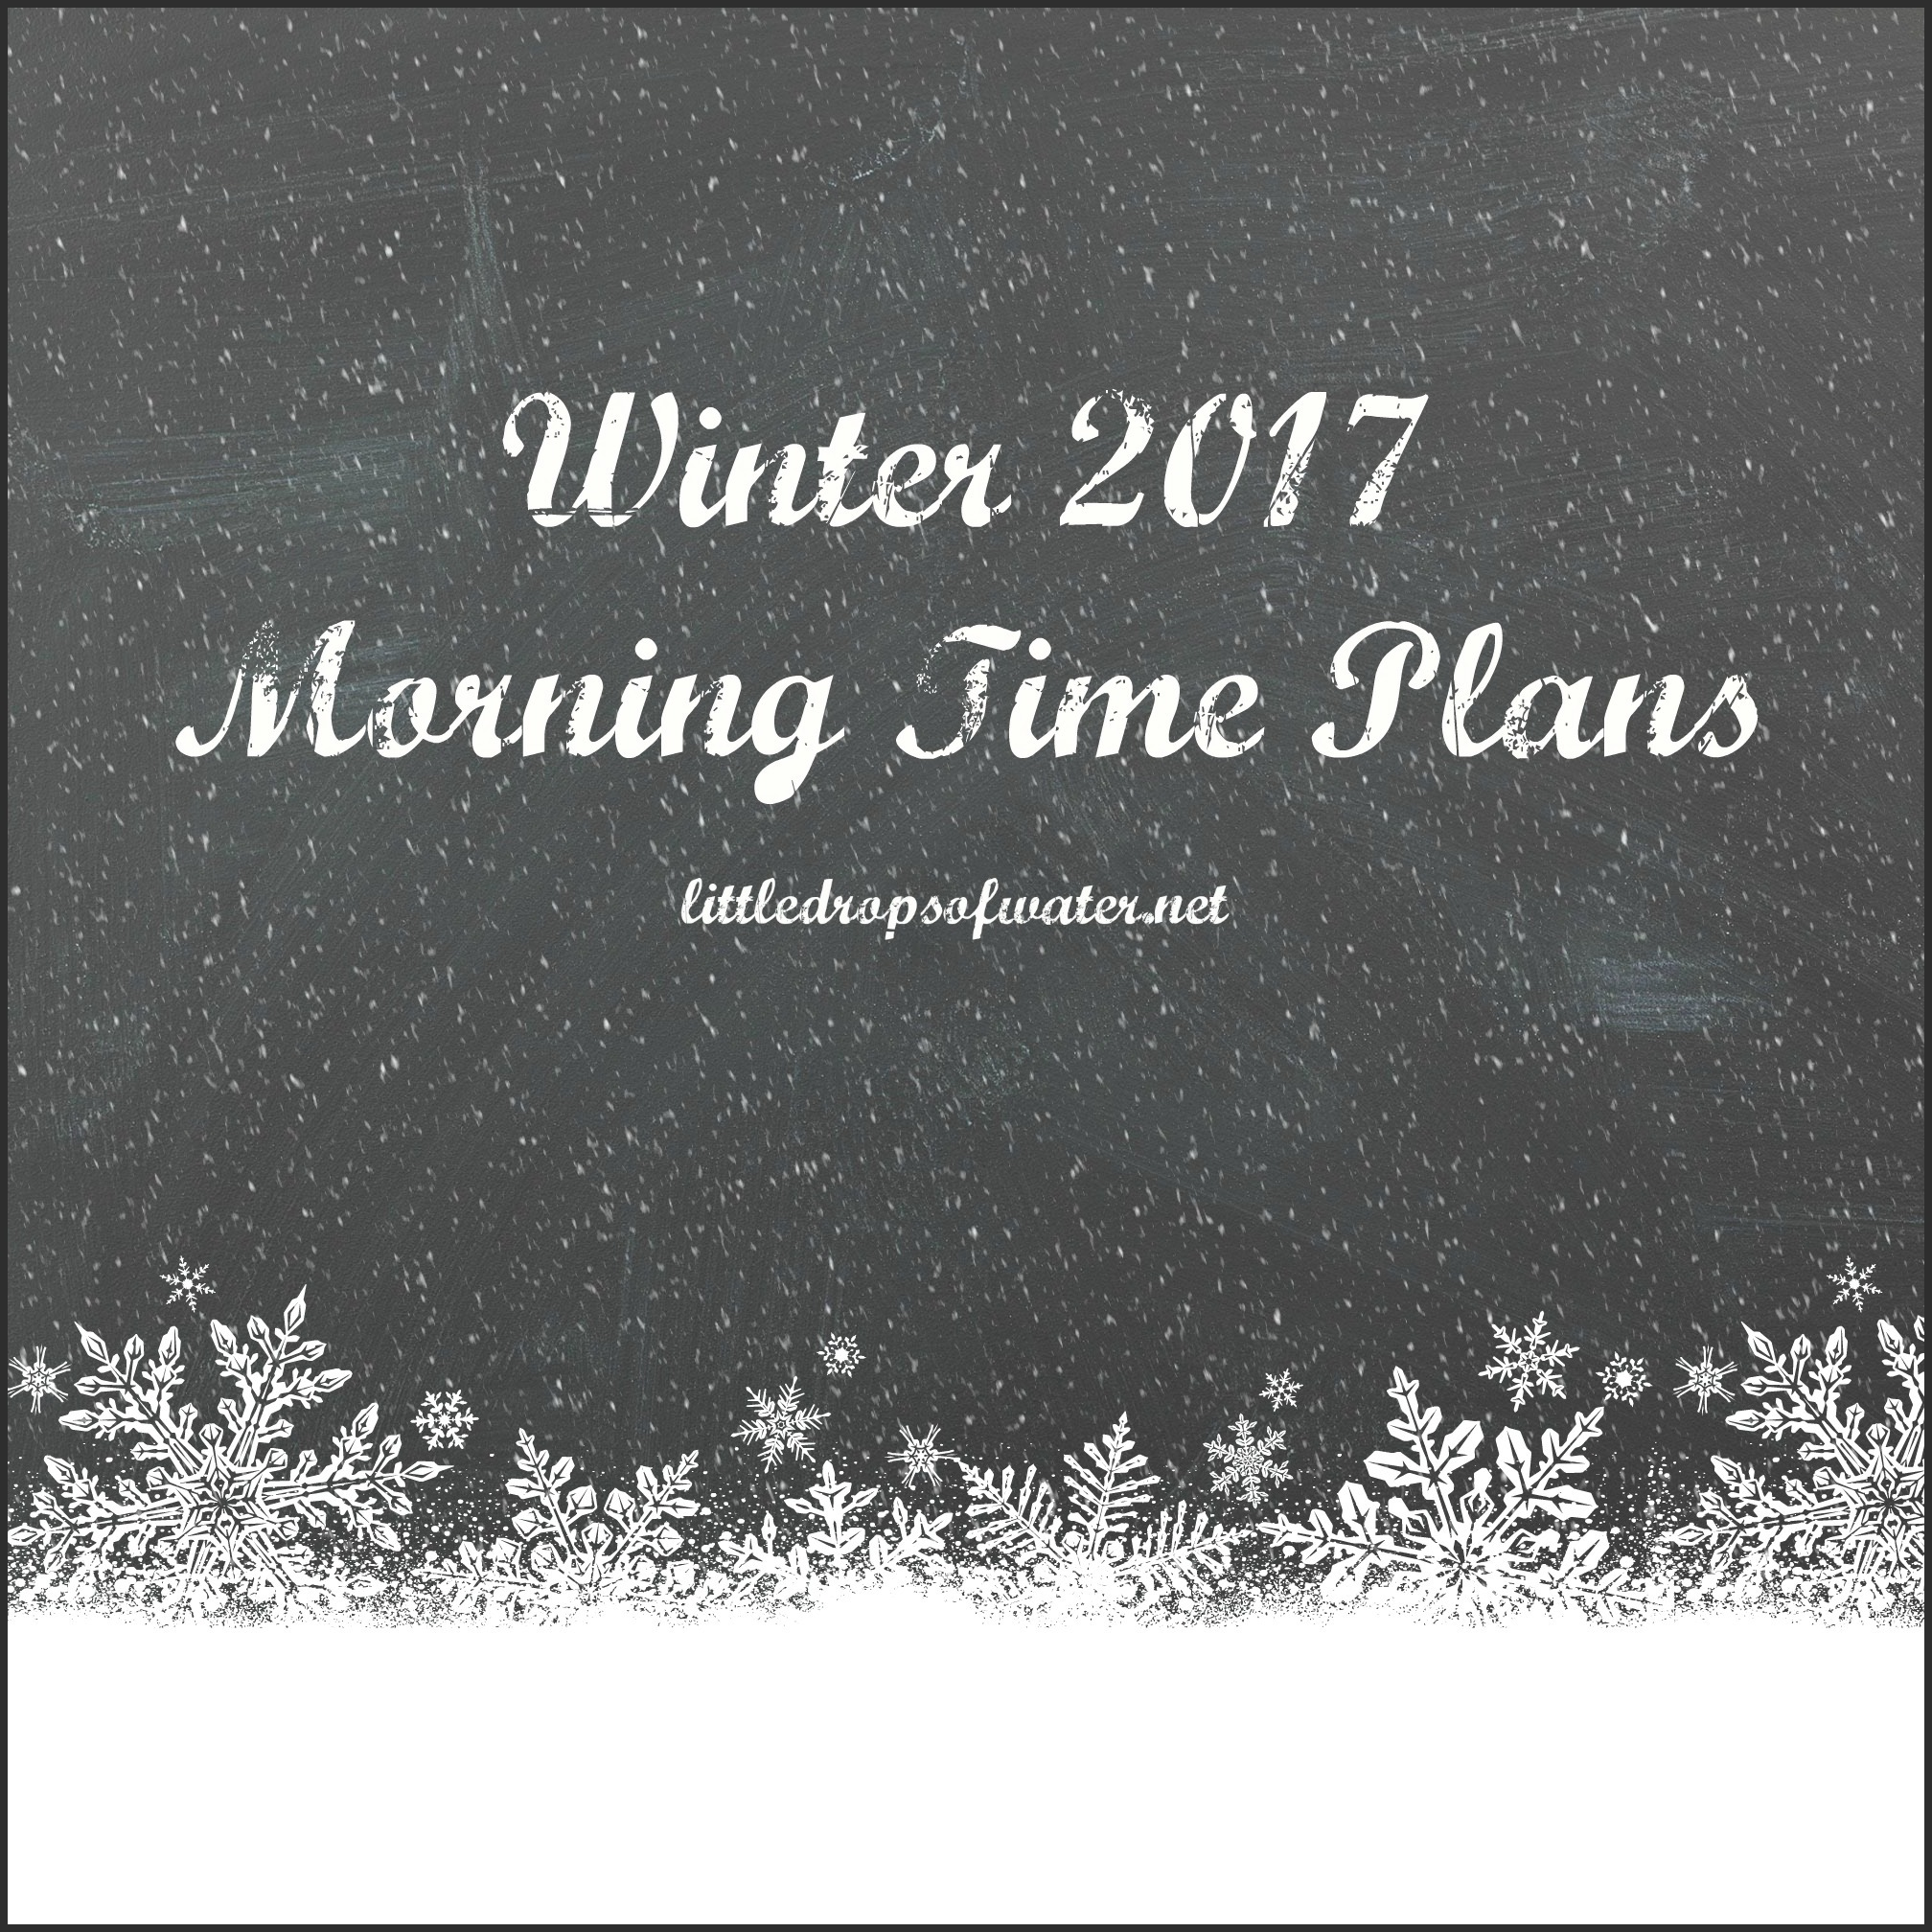 Winter 2017 Morning Time Plans